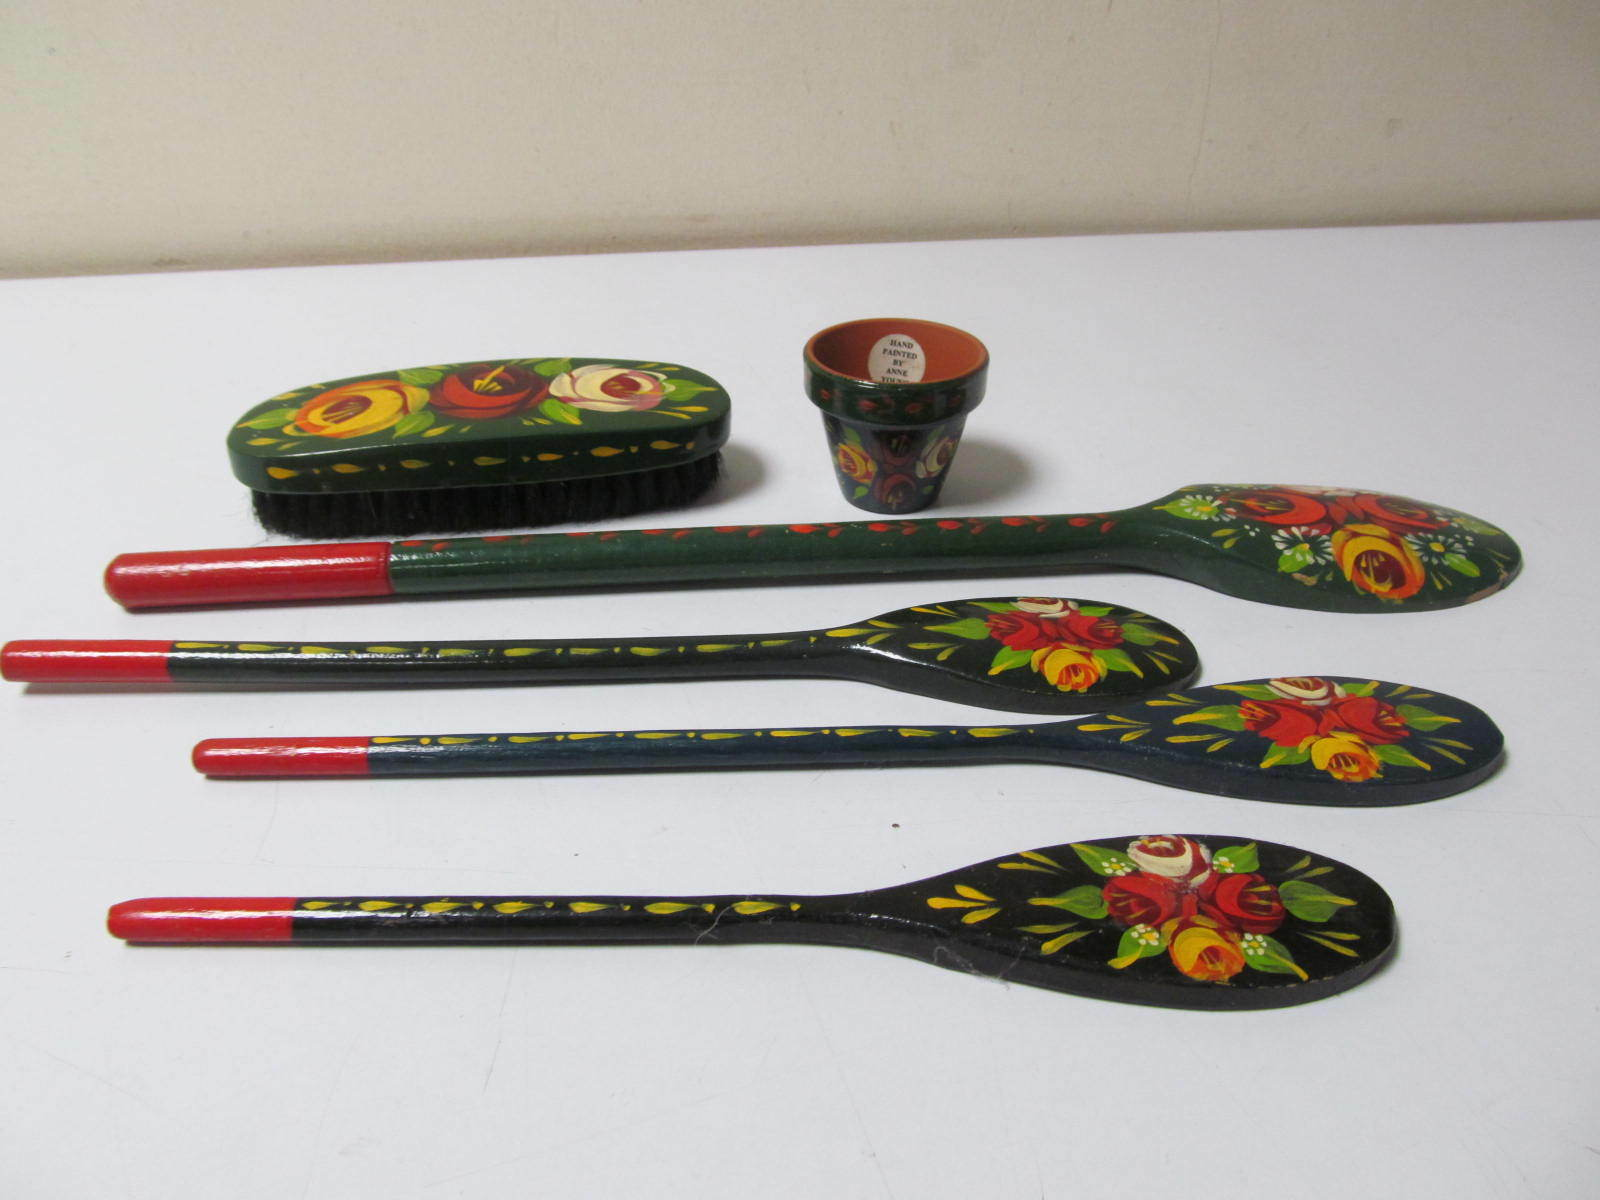 Canalware by Anne Young Very Rare Easter 4 x Spoon, Brush, 1 Pot, (GA164035)